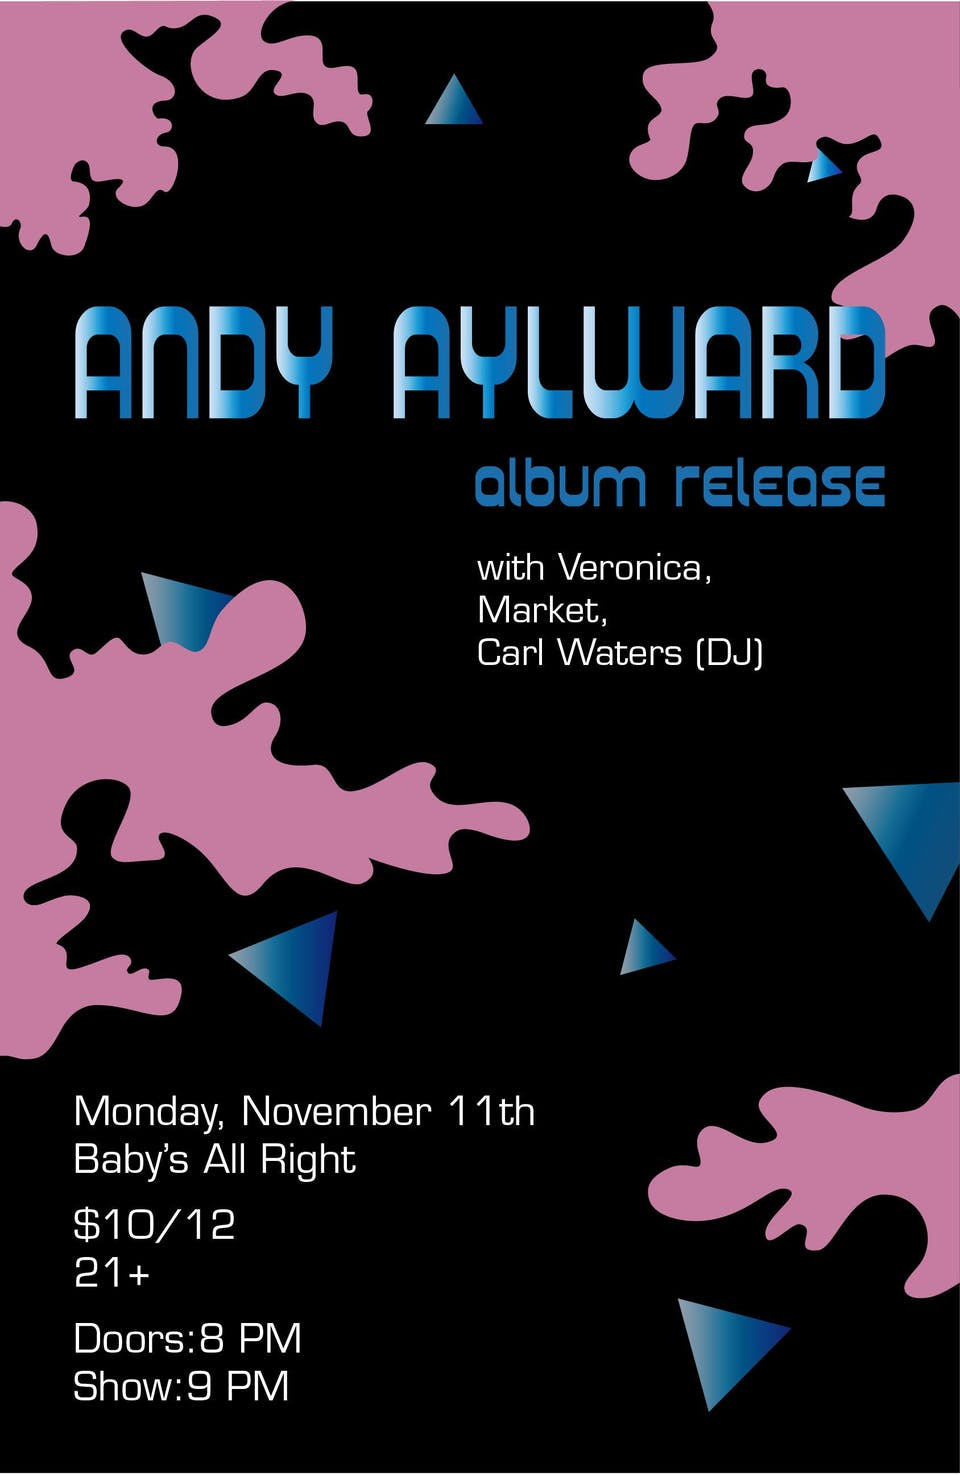 Andy Aylward Album Release with Veronica, Market, Carl Waters (DJ)